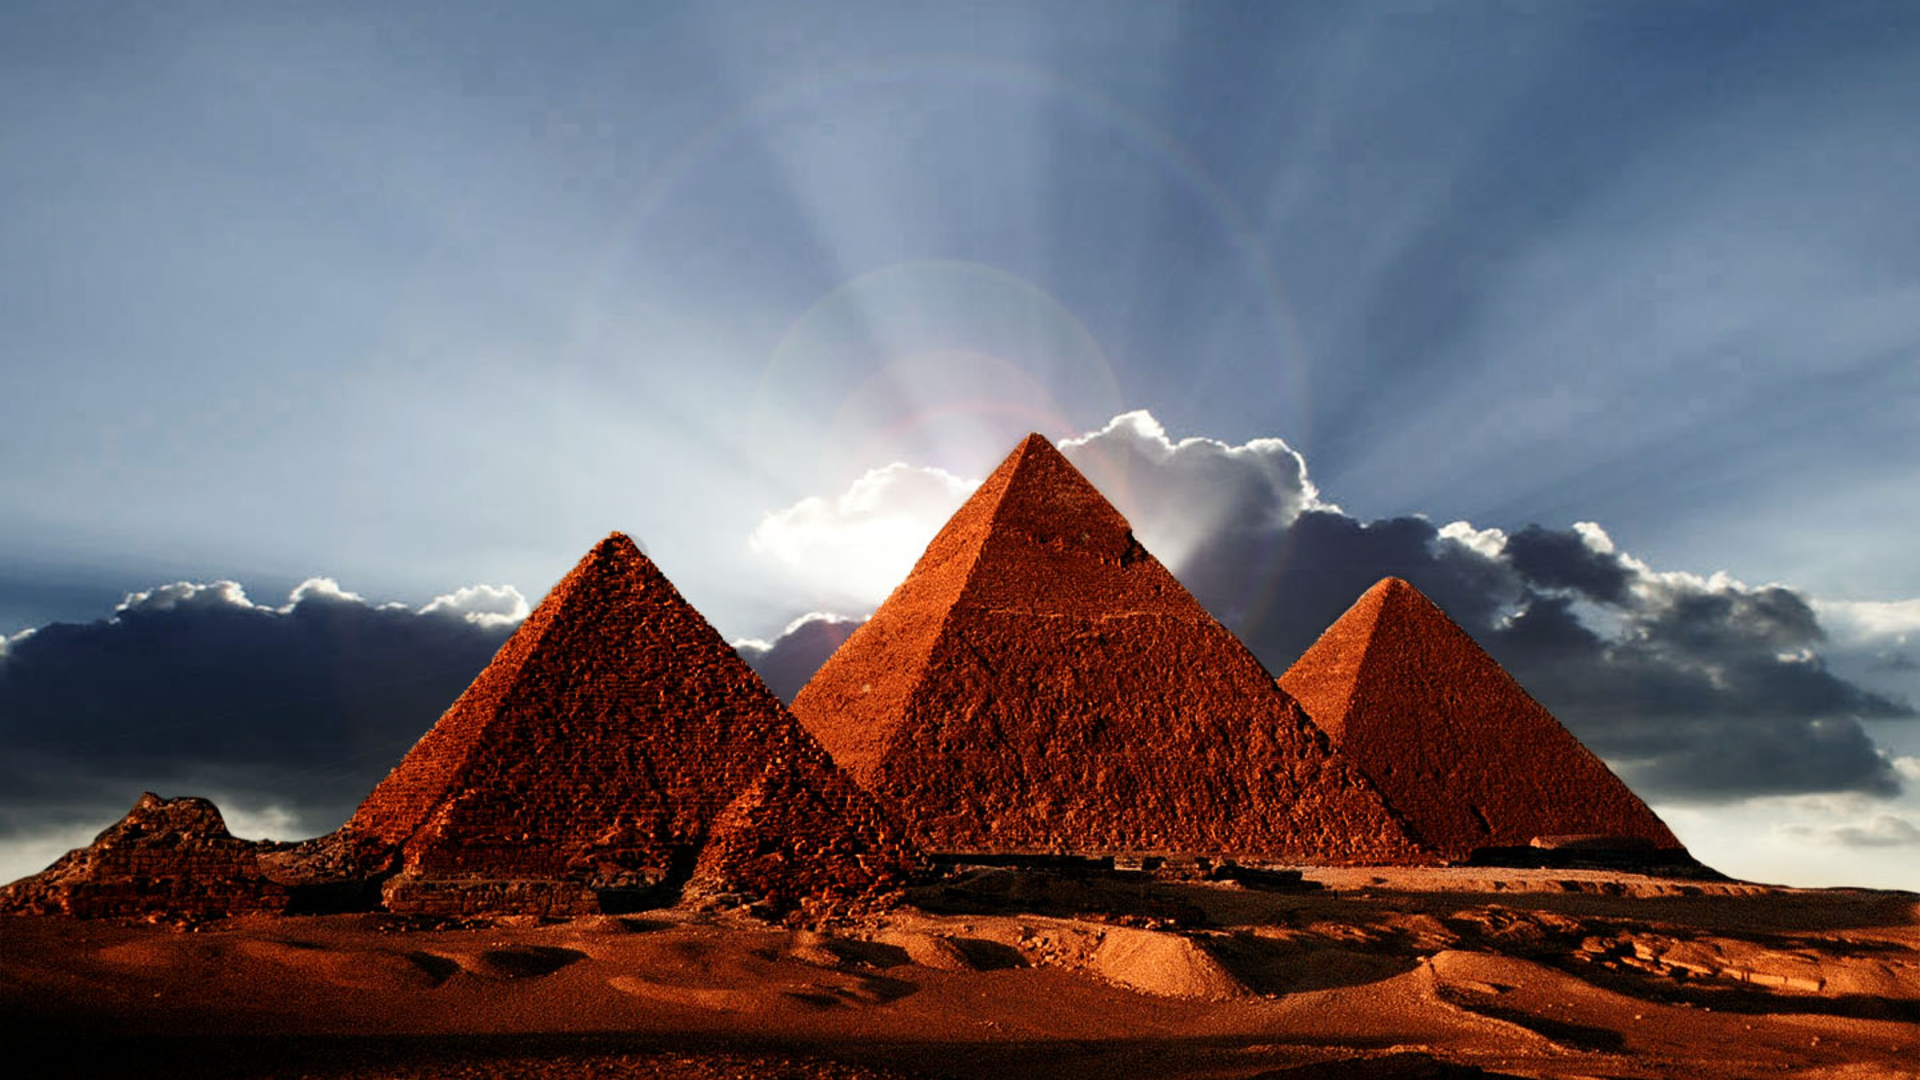 hd-abstract-pyramids-wallpapers – black history in the bible